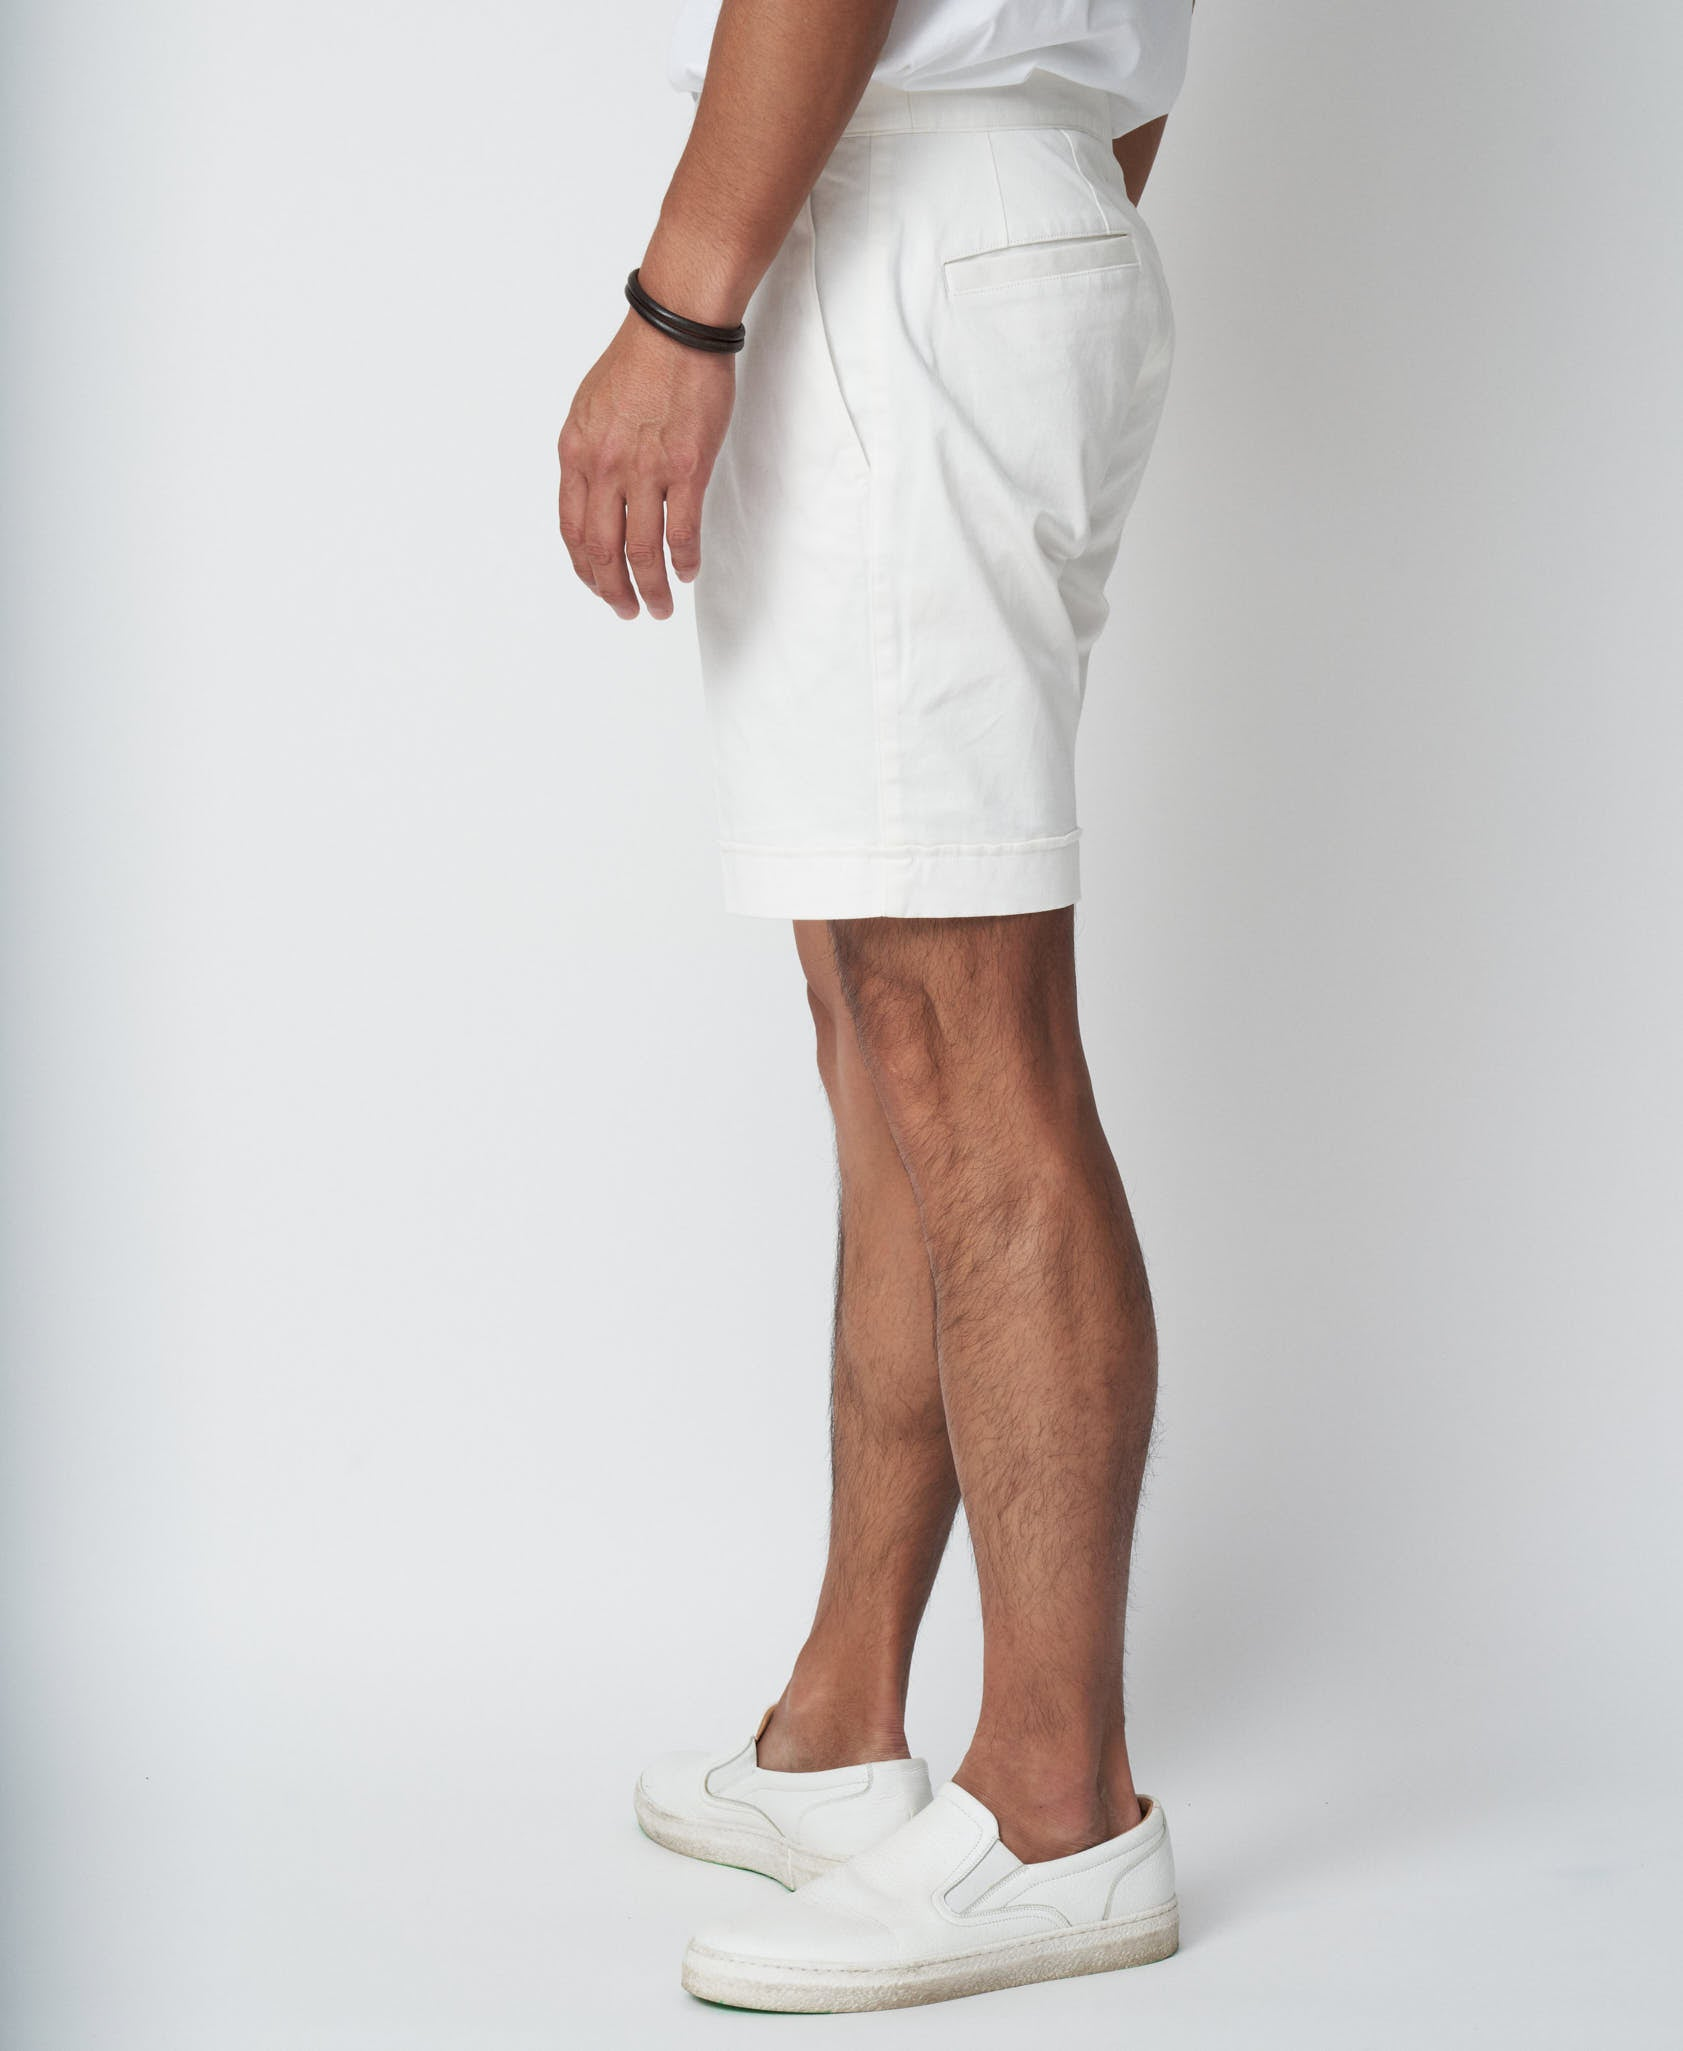 TM-6669 / Compact Twill Short Pants